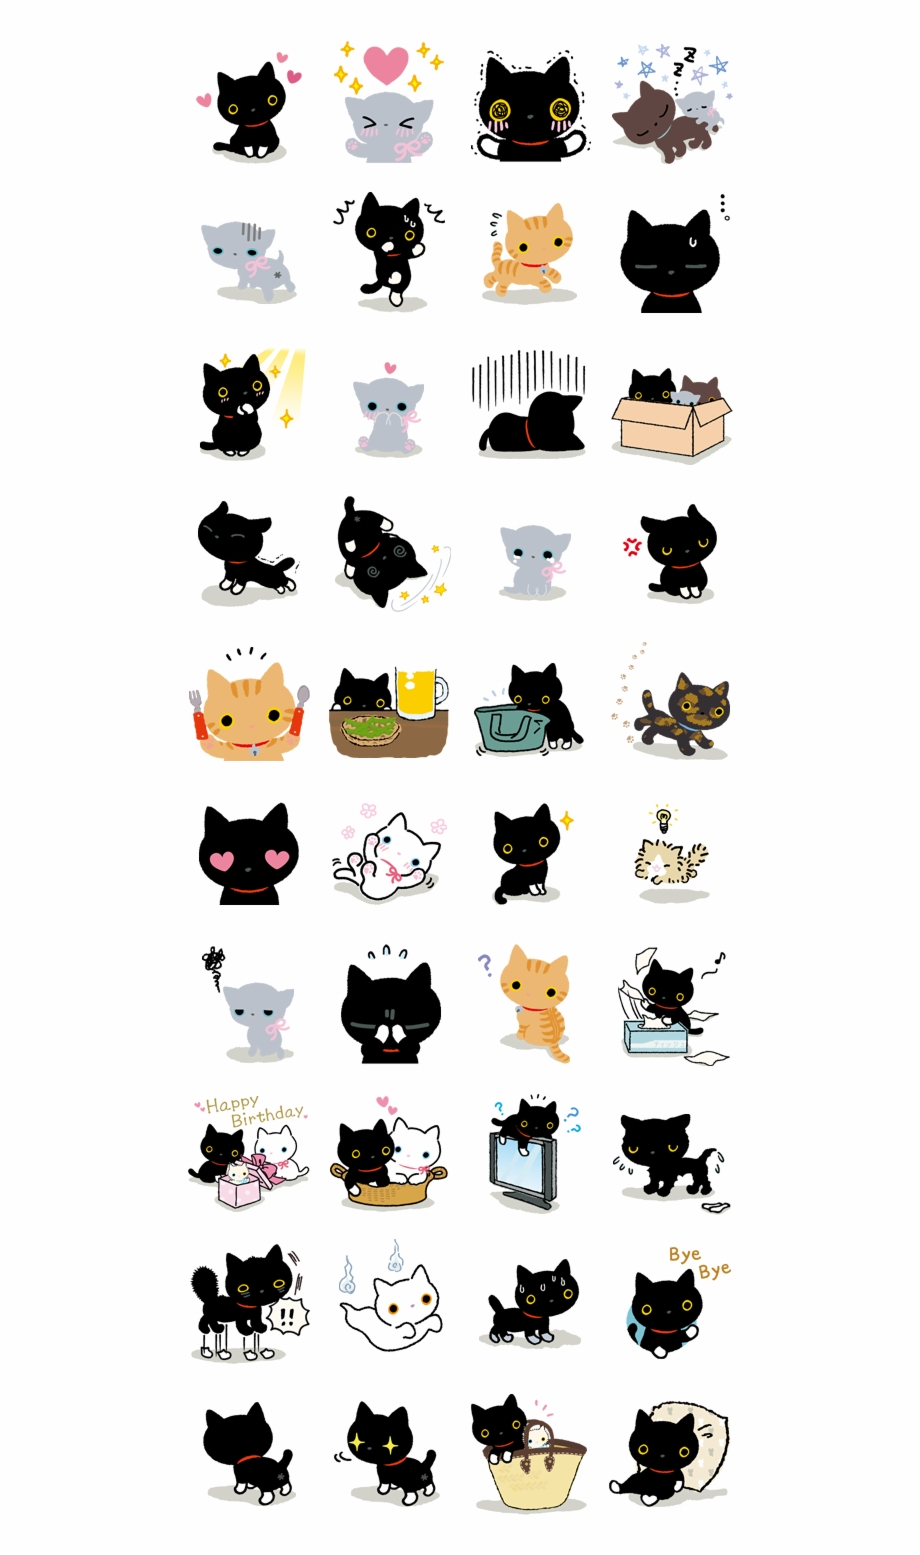 It's just a picture of Cat Printable intended for unicorn